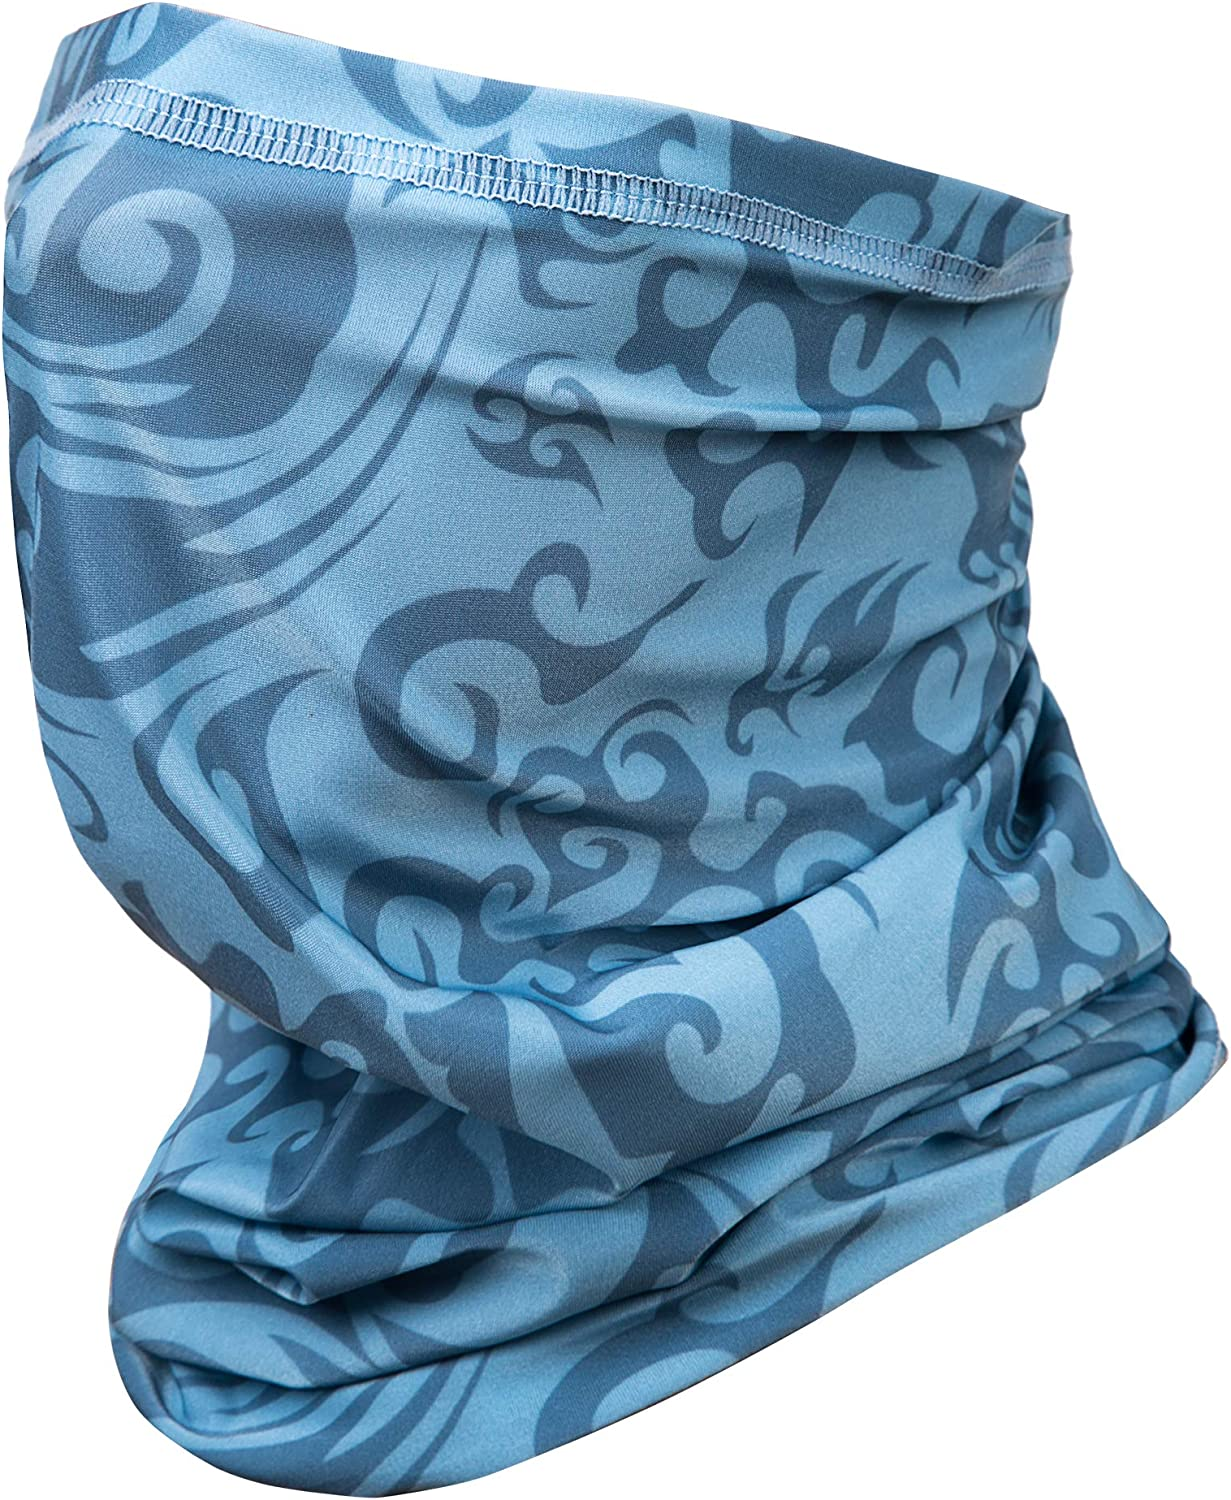 Neck Gaiter Face Scarf Mask-Dust Bandanas UV Protection for Motorcycle Cycling Riding Running Headbands